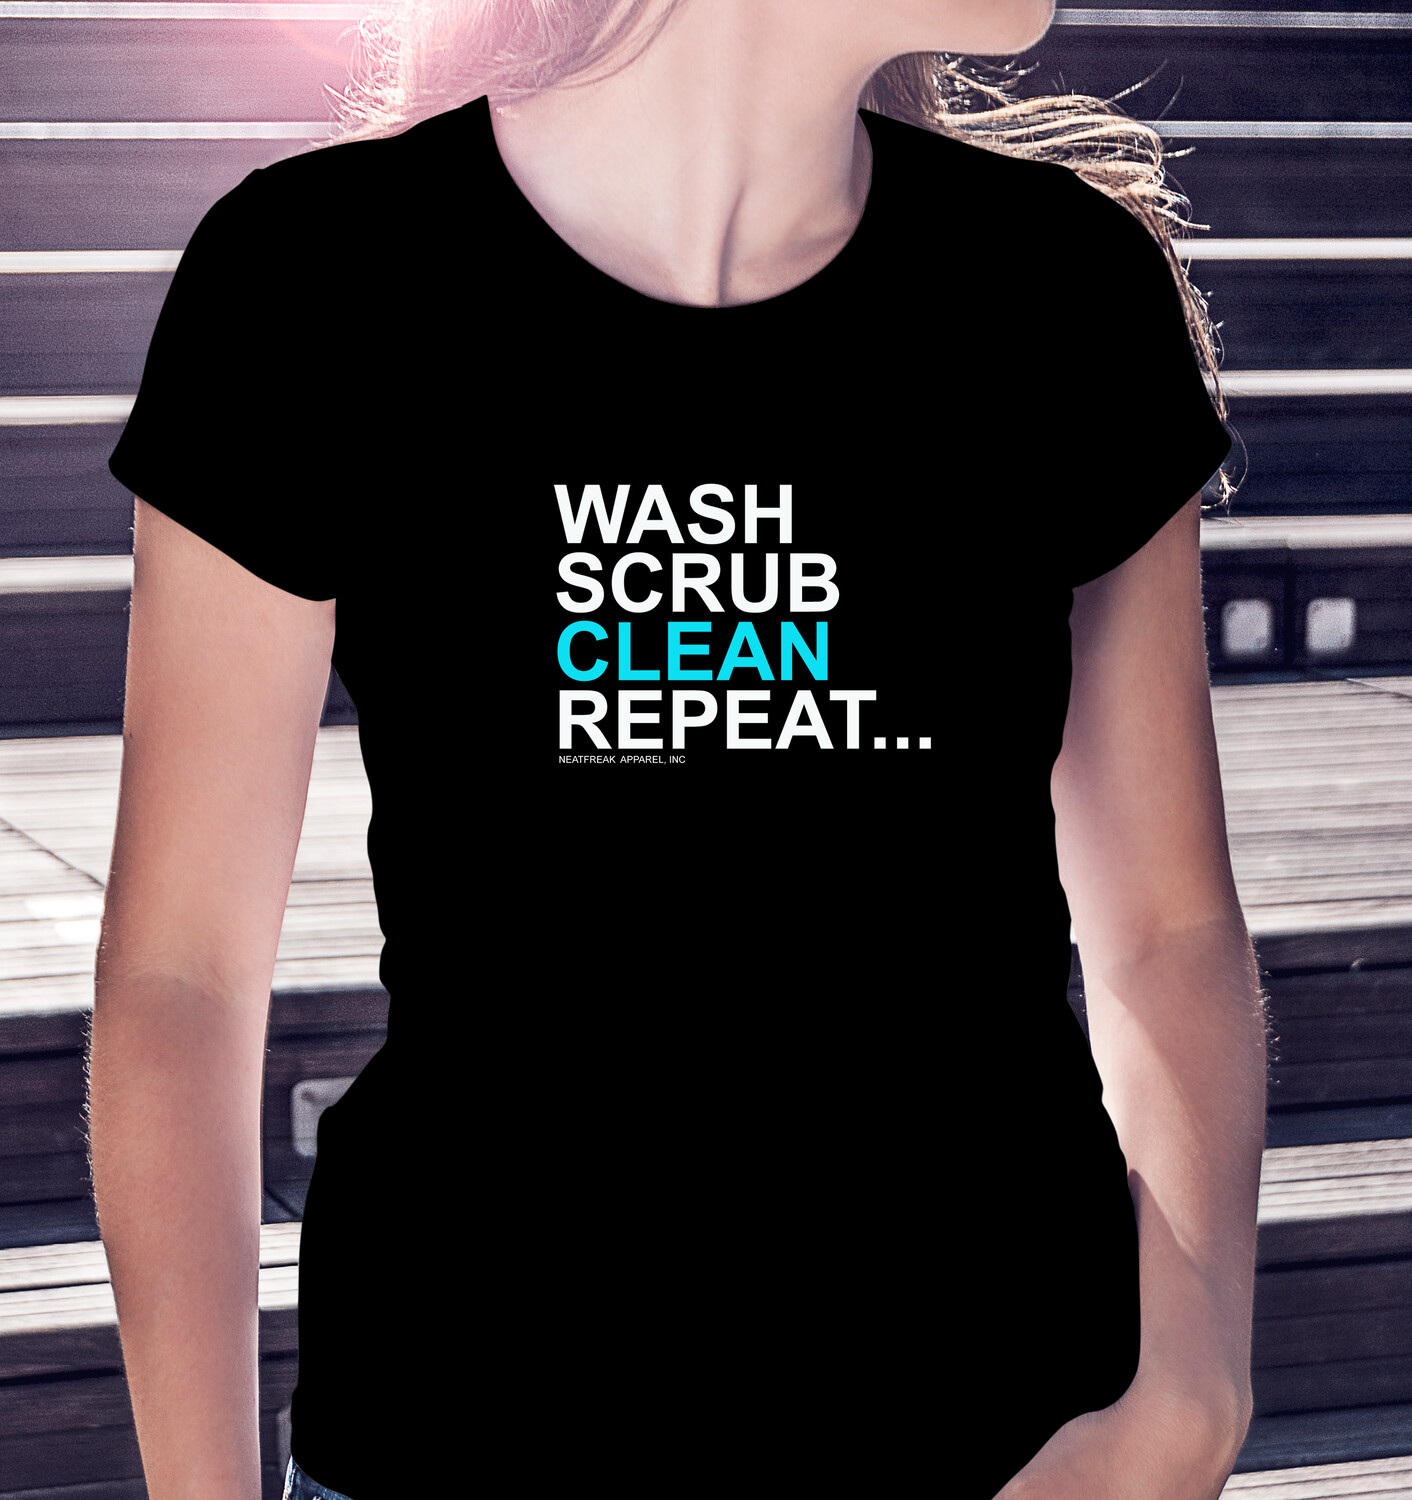 WASH SCRUB CLEAN REPEAT - CLASSIC WOMAN'S TEE [7 Colors]